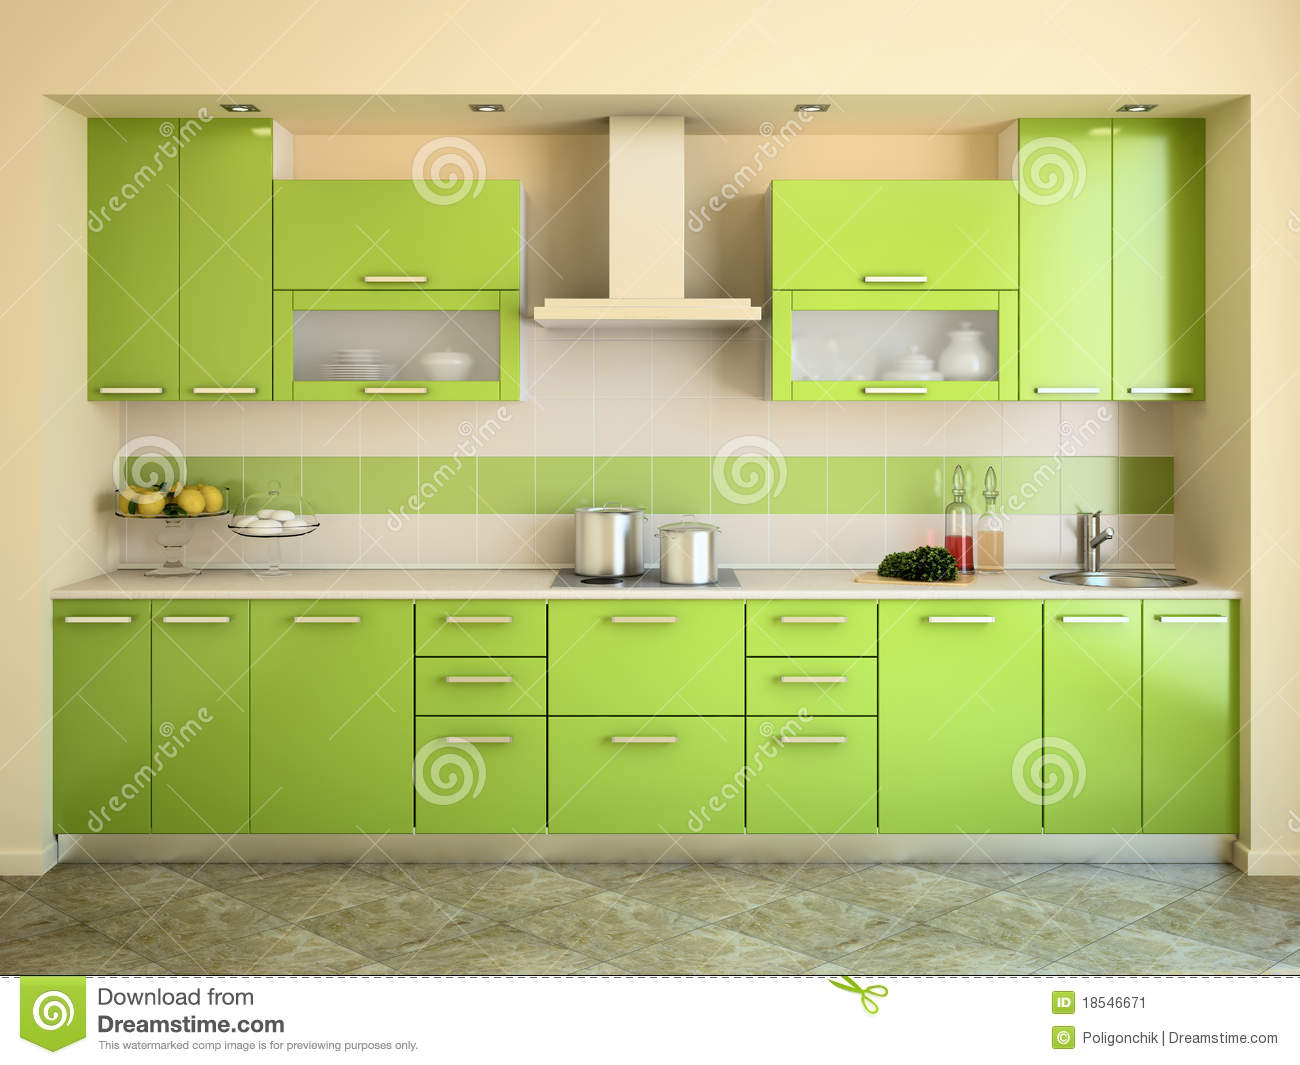 Cuisine verte moderne image stock image 18546671 for Article de cuisine commercial